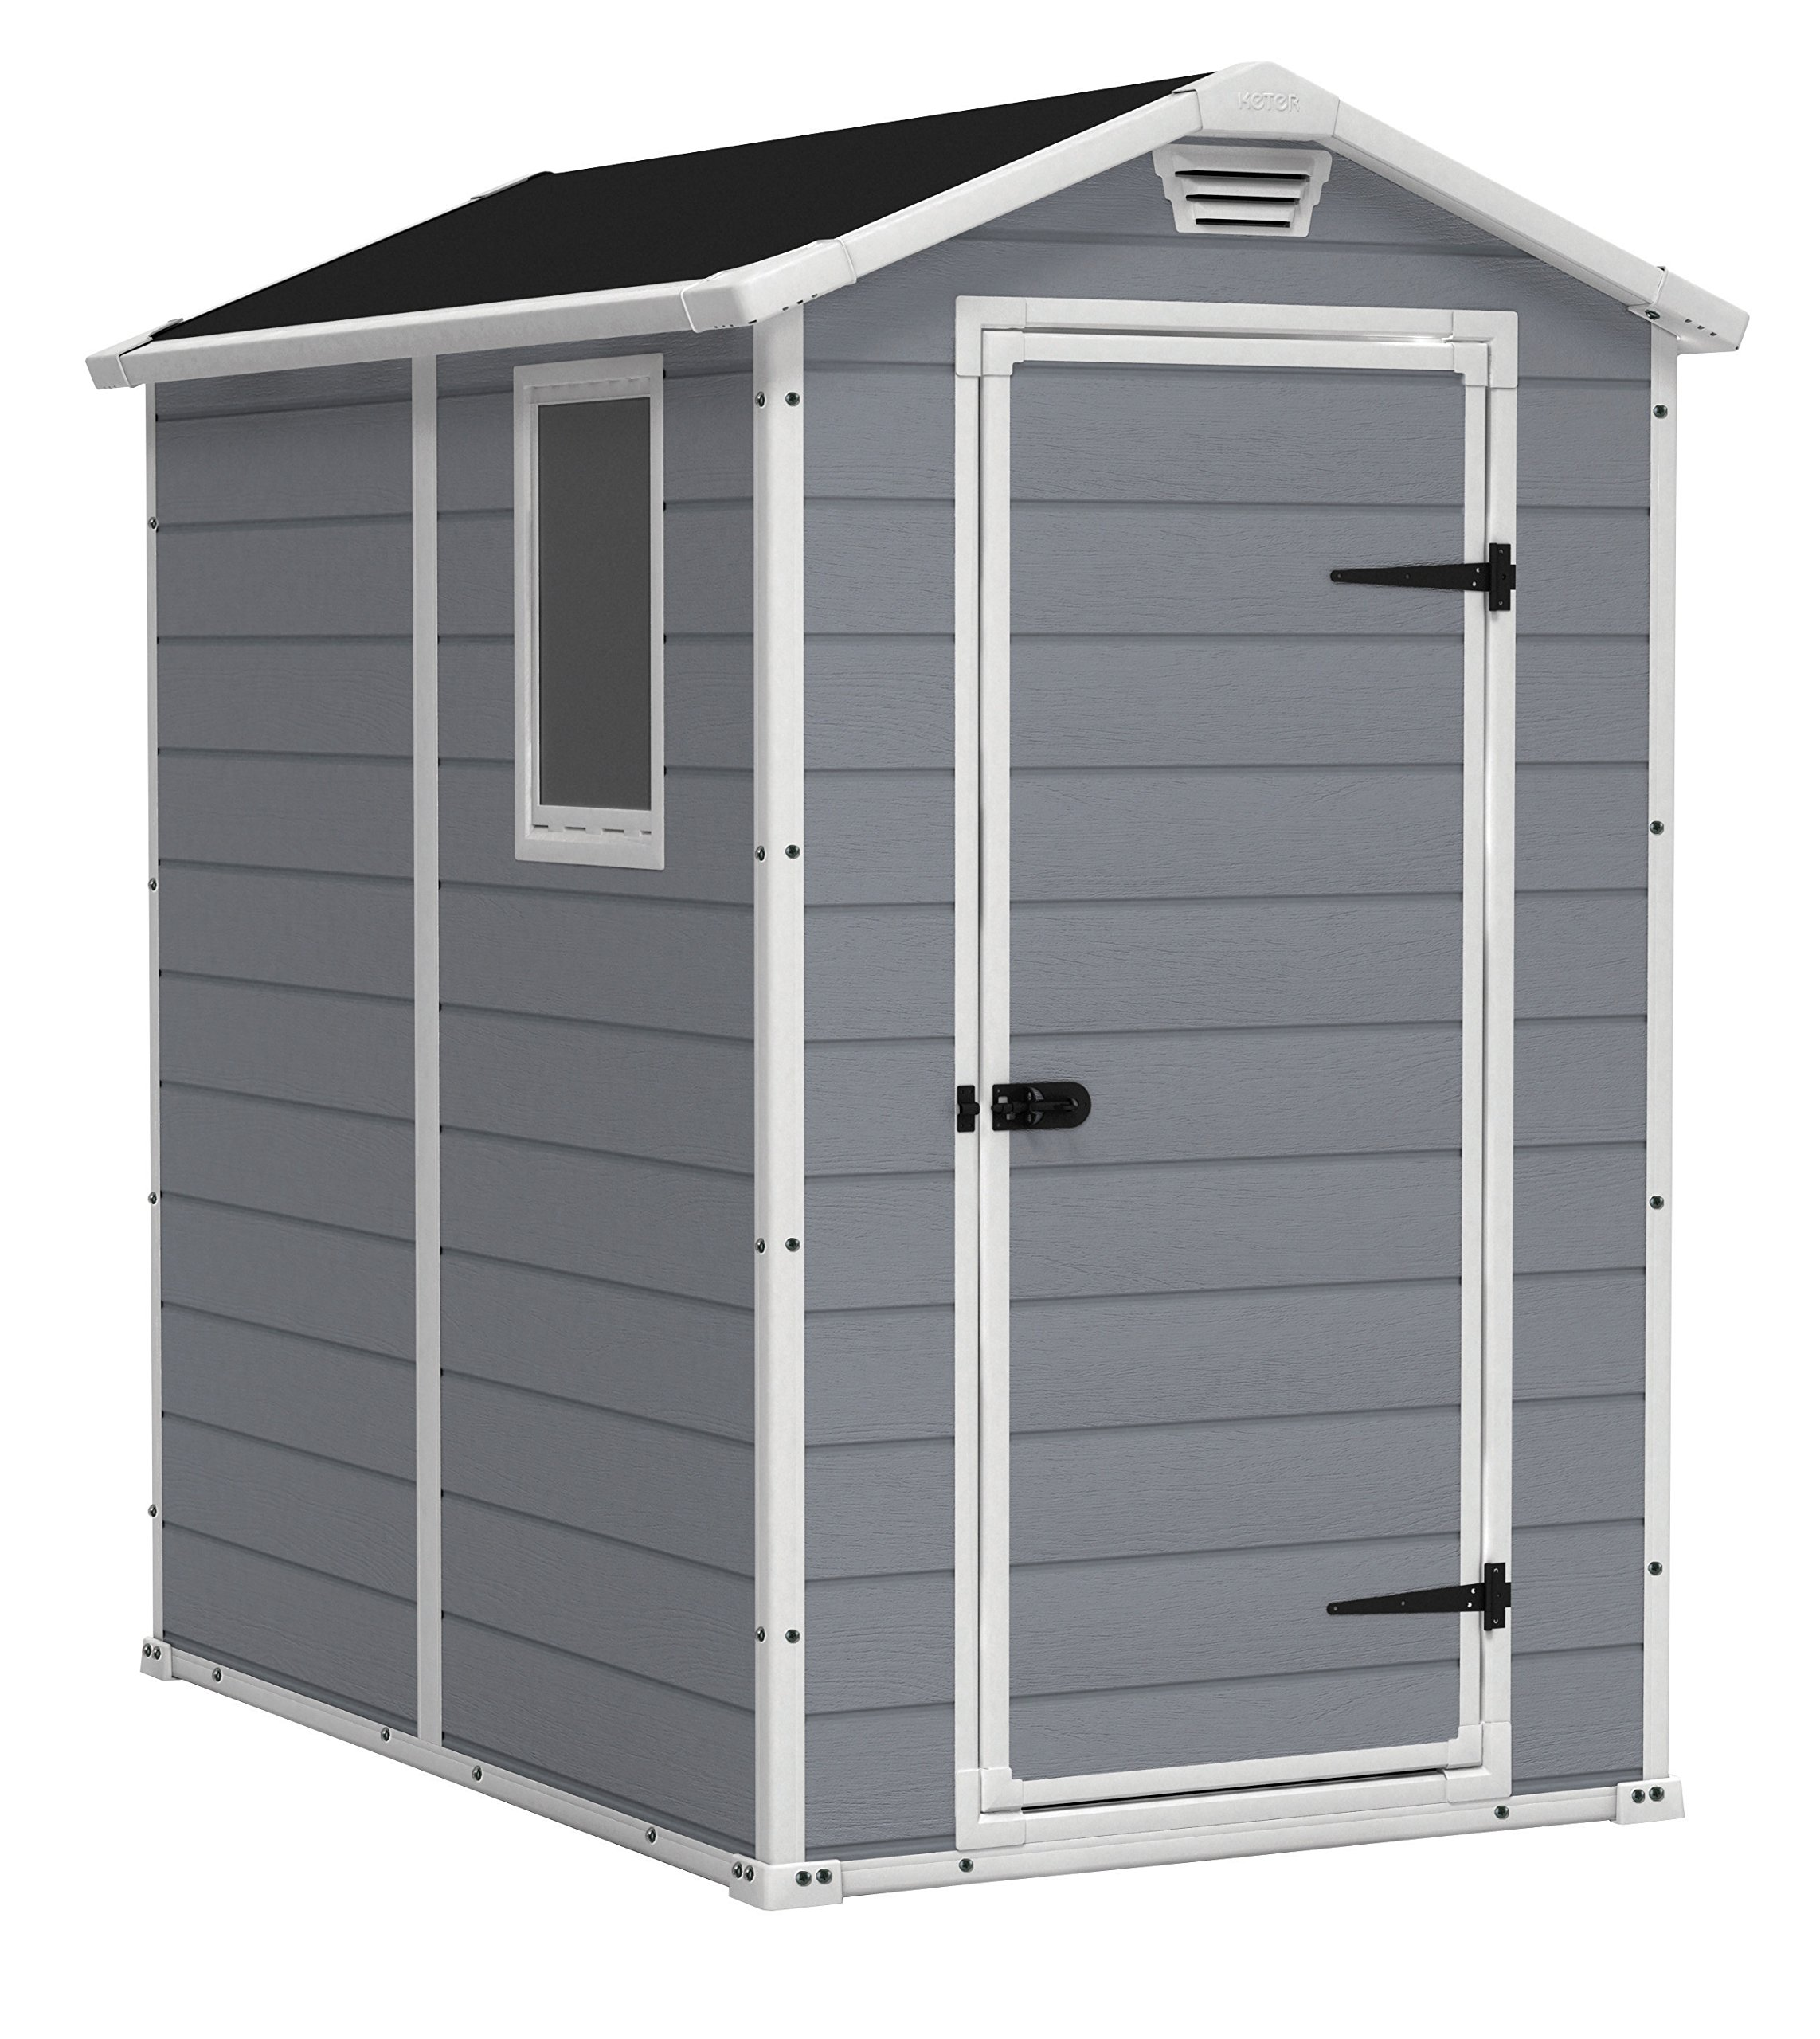 uncategorized exquisite rubbermaid in best with the full are size sheds shop ft roughneck of for what x needed gable storage accessories common shed